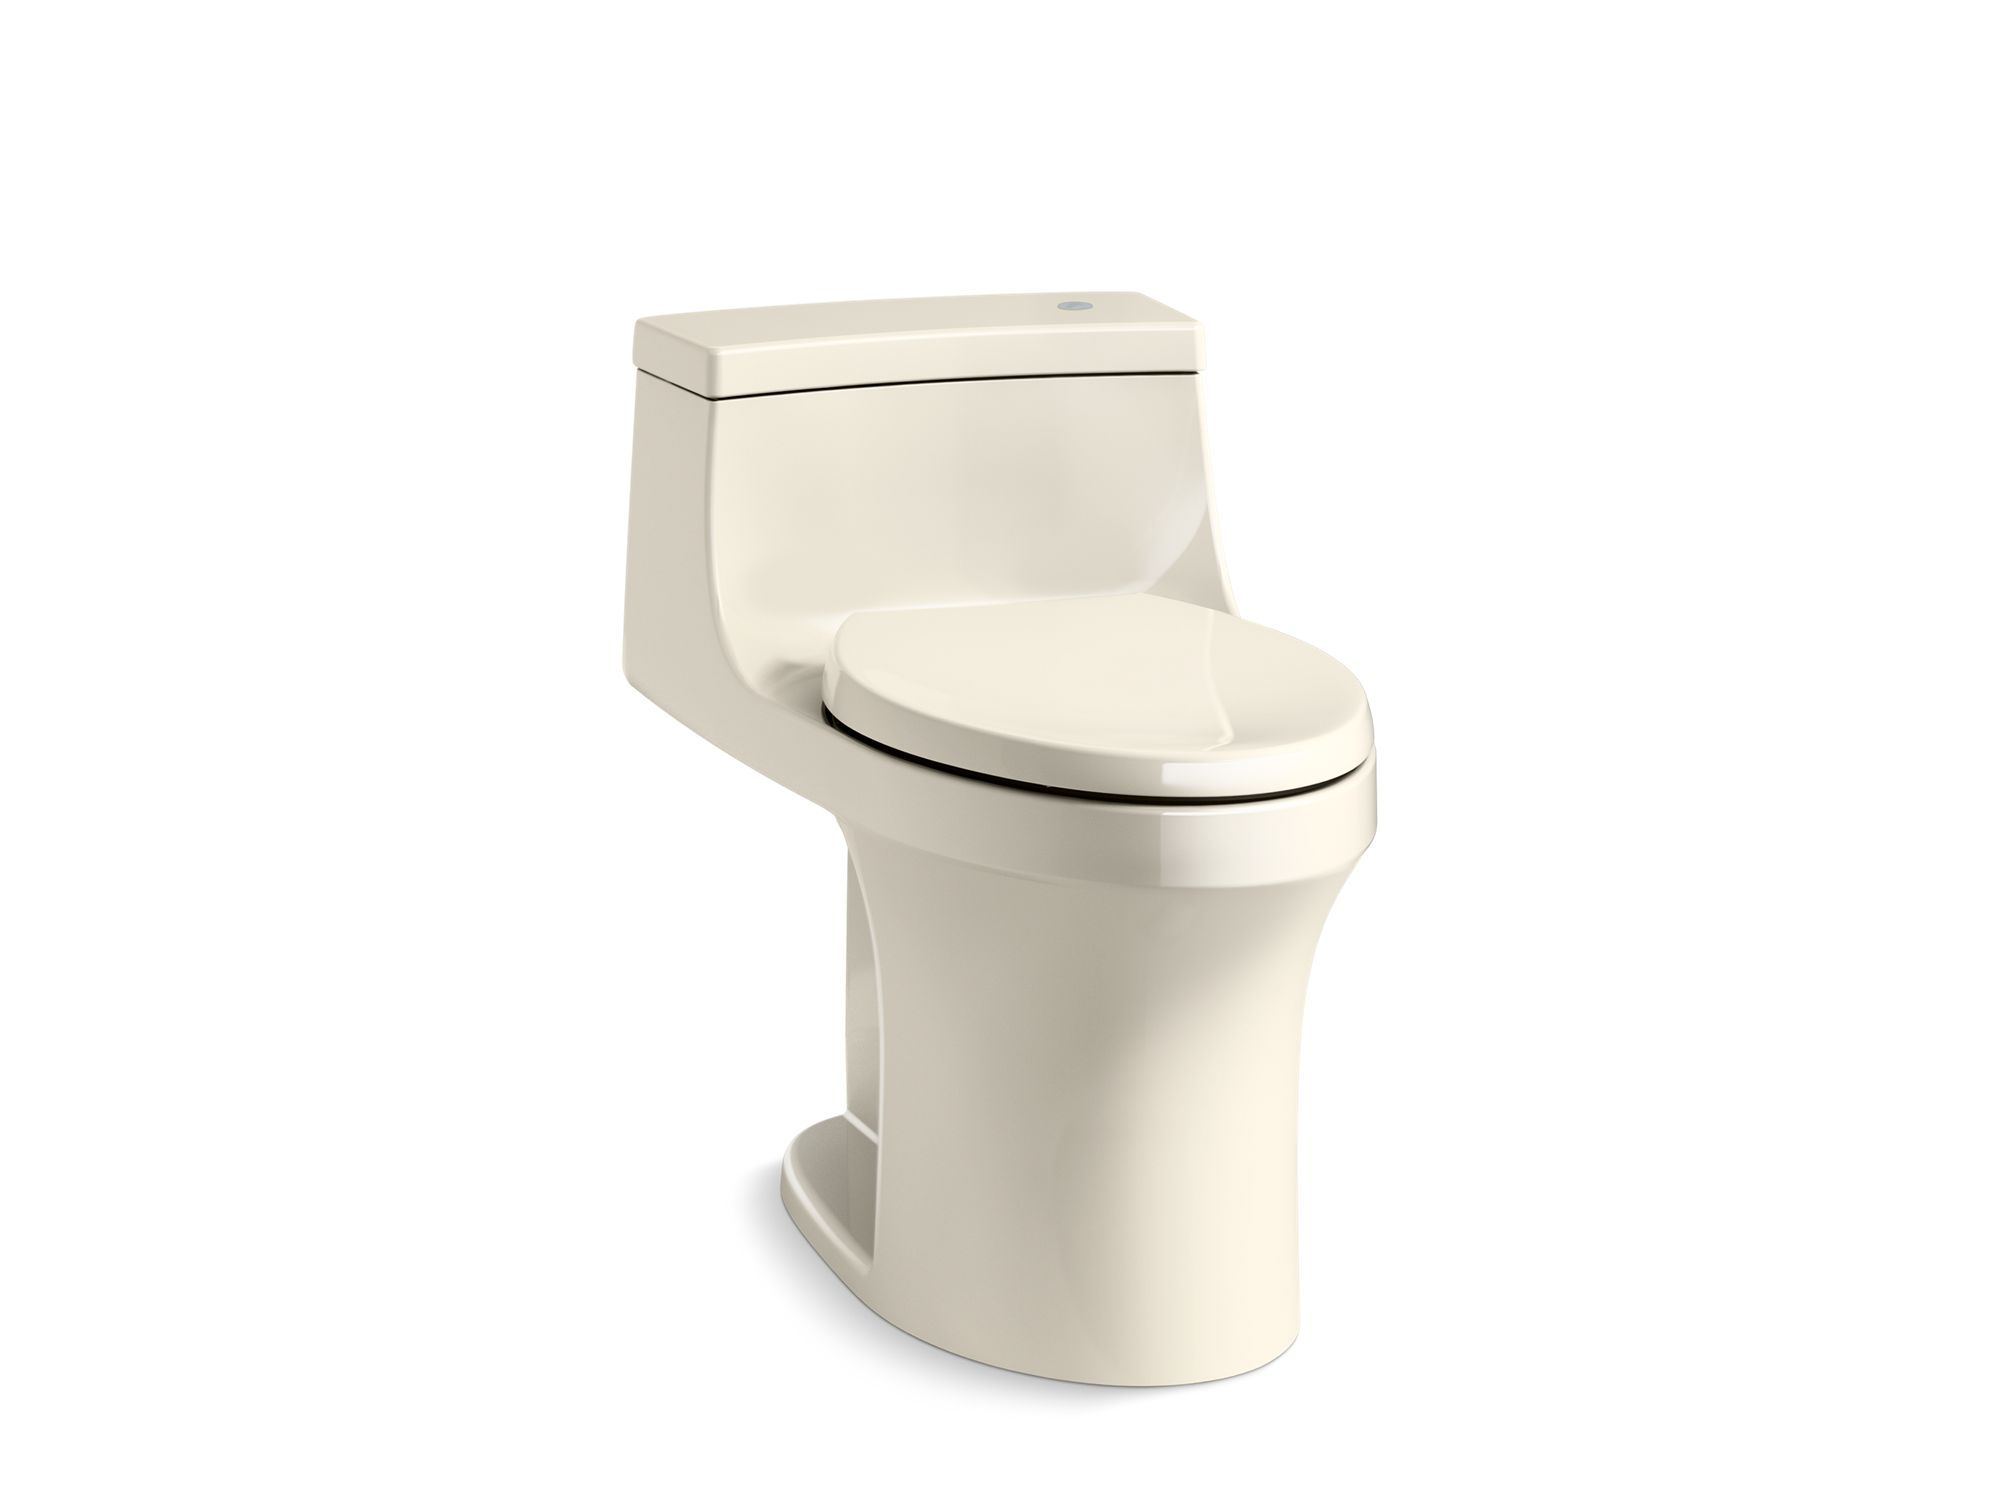 Kohler San Souci™ K-4000-47 Touchless Comfort Height® one-piece compact elongated 1.28 gpf toilet with AquaPiston® flushing technology Almond